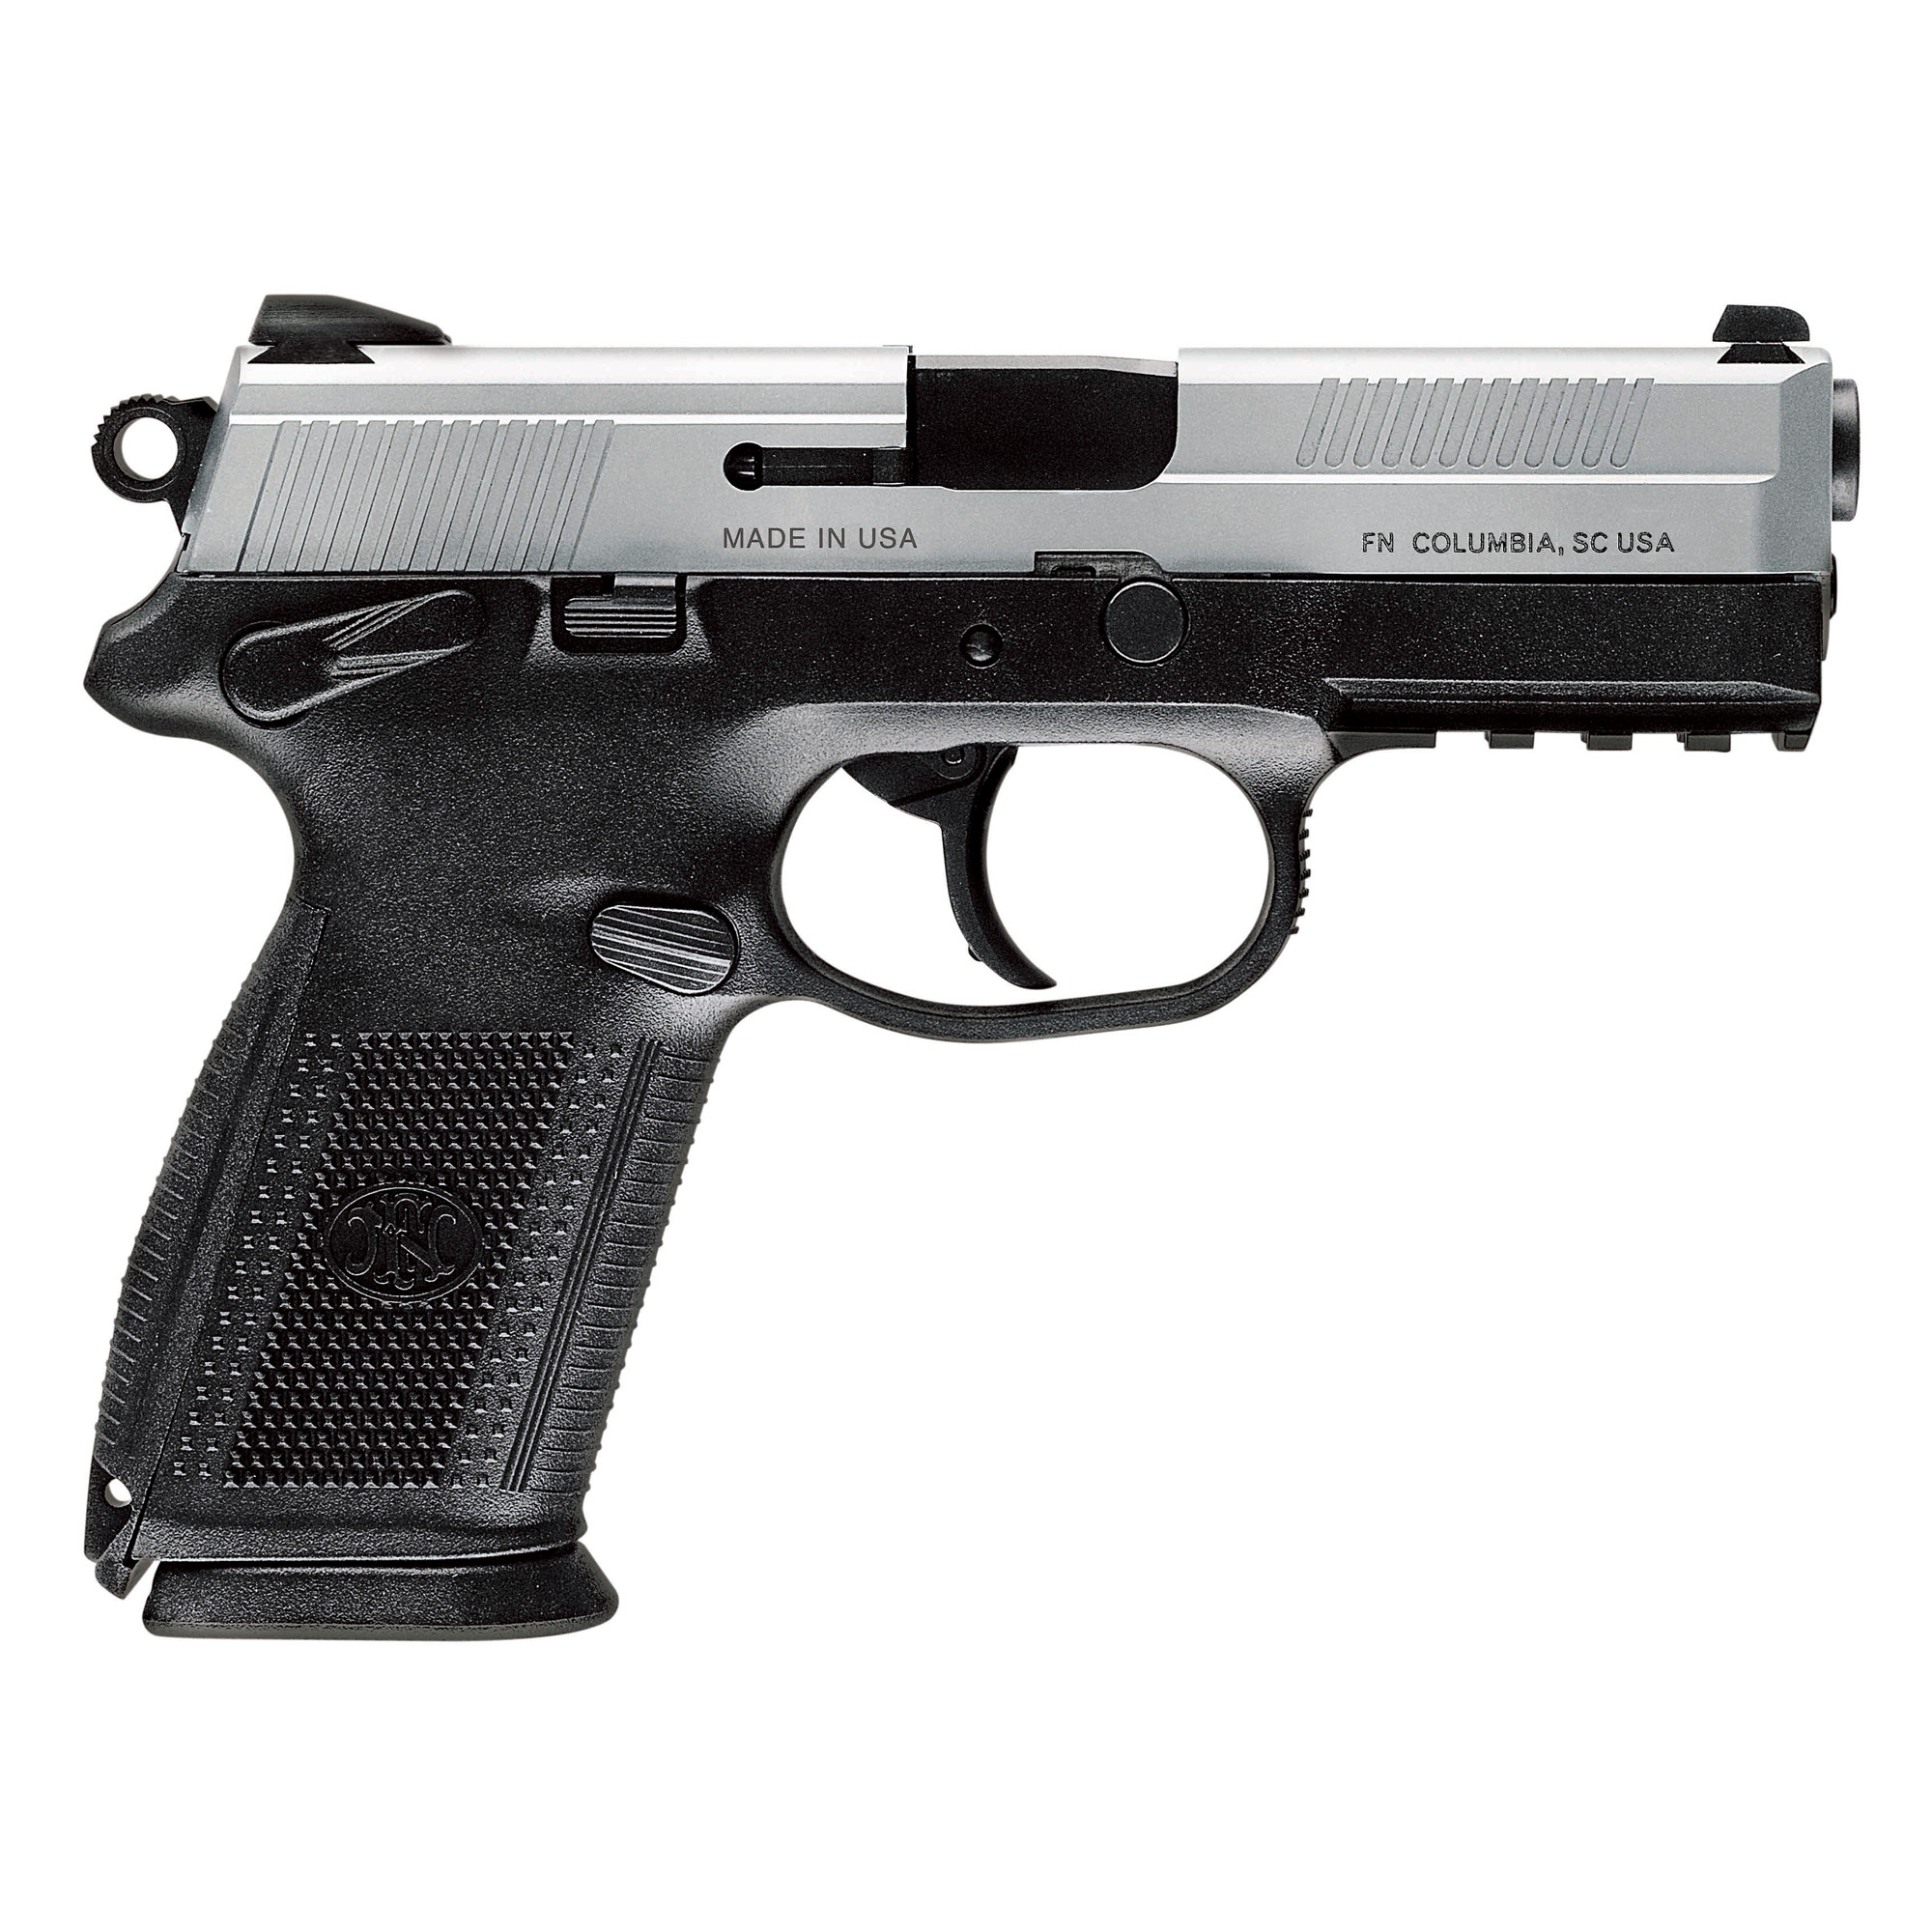 """The FNX(TM)-9 features an ergonomic"""" polymer frame with a low-bore axis for less felt recoil and improved control. The grip panels are checkered and ribbed for comfortable"""" no-snag carry. Two interchangeable backstrap inserts quickly adapt the FNX(TM) to your hand size. The profiled stainless steel slide has cocking serrations front and rear"""" and the 4-inch cold hammer-forged stainless steel barrel delivers pinpoint accuracy. Ambidextrous operating controls make this handgun perfect for competition or personal defense."""